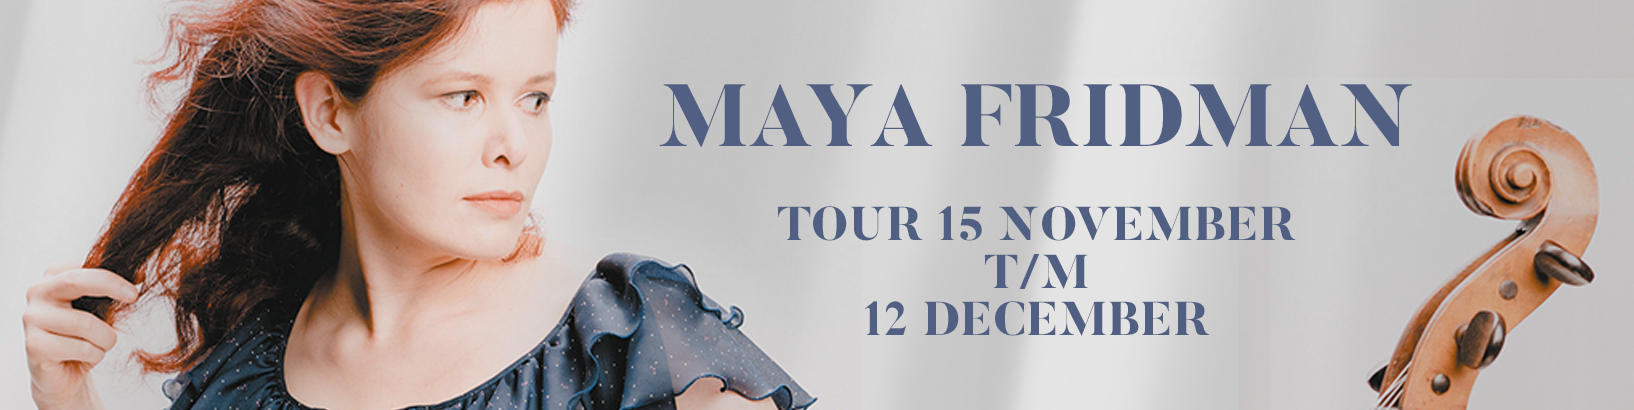 Tour Maya Fridman van start